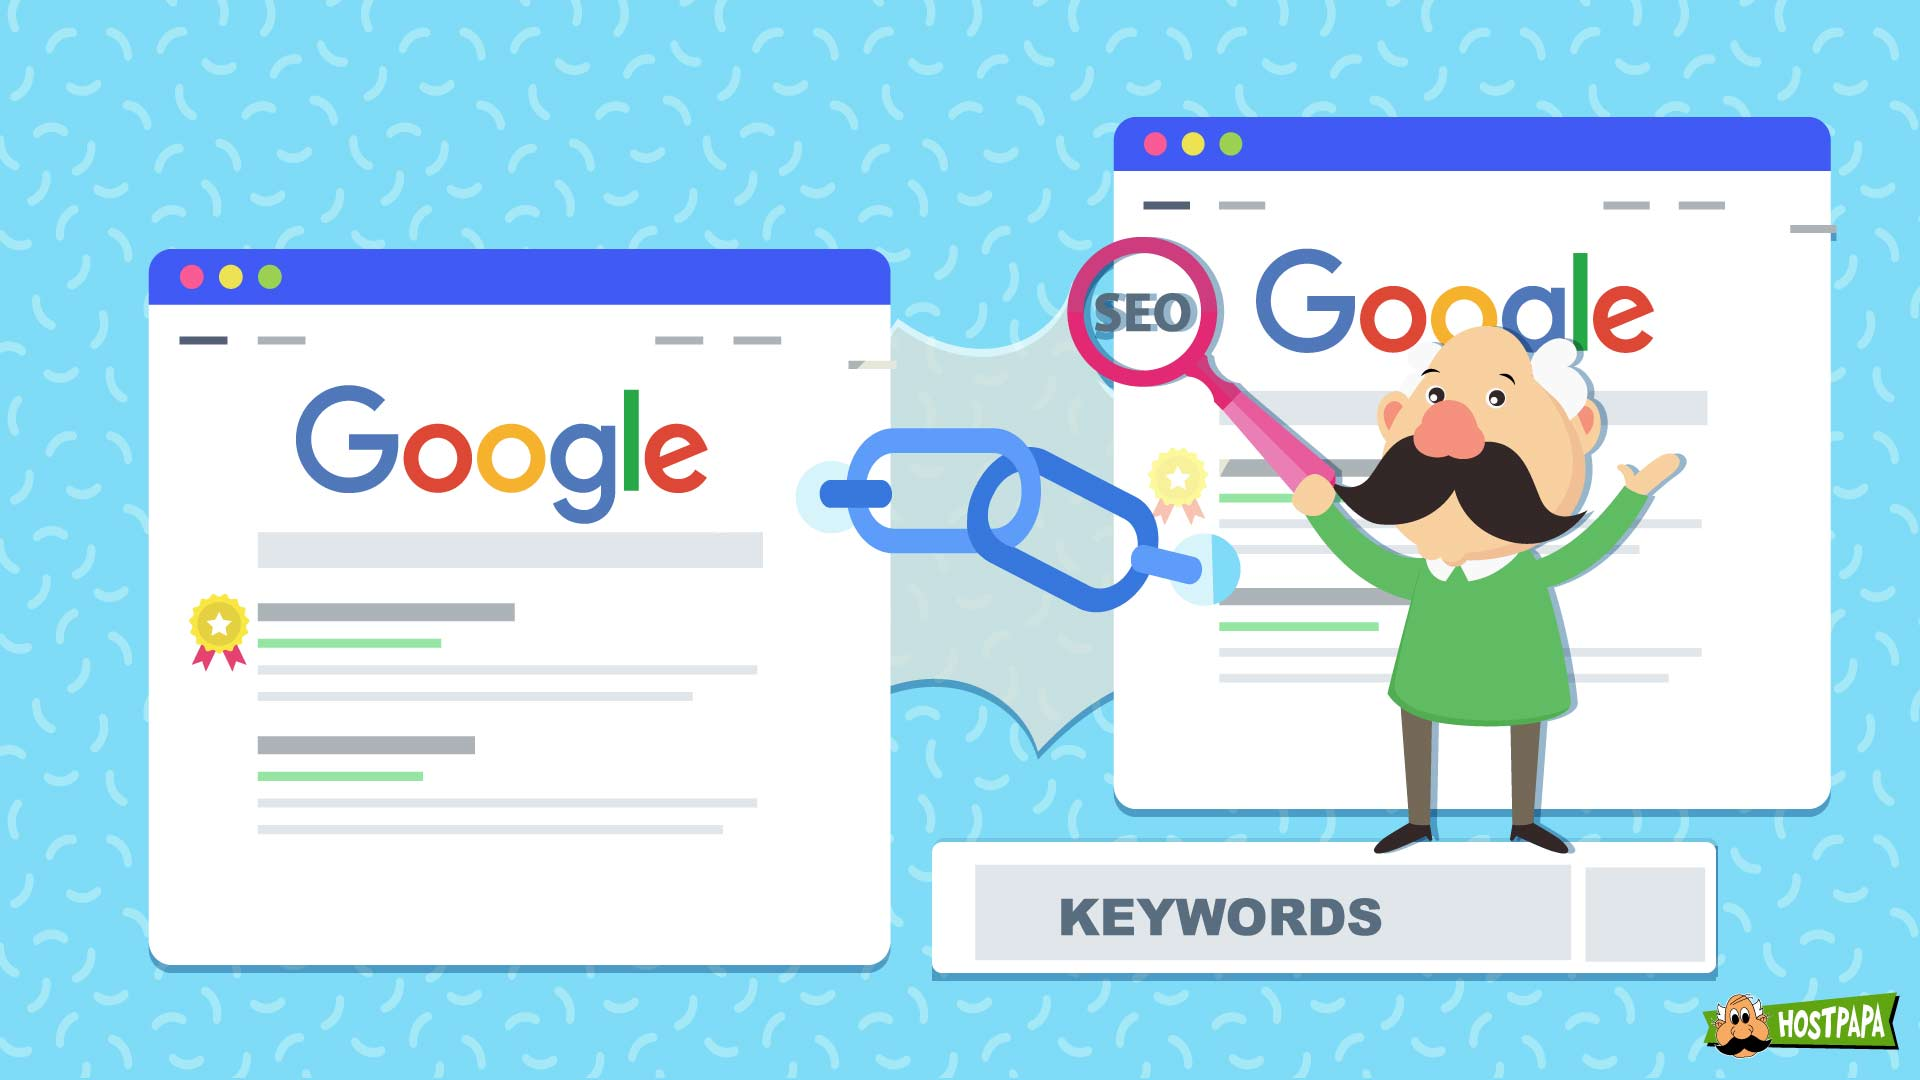 Support SEO -  Increase your website's value